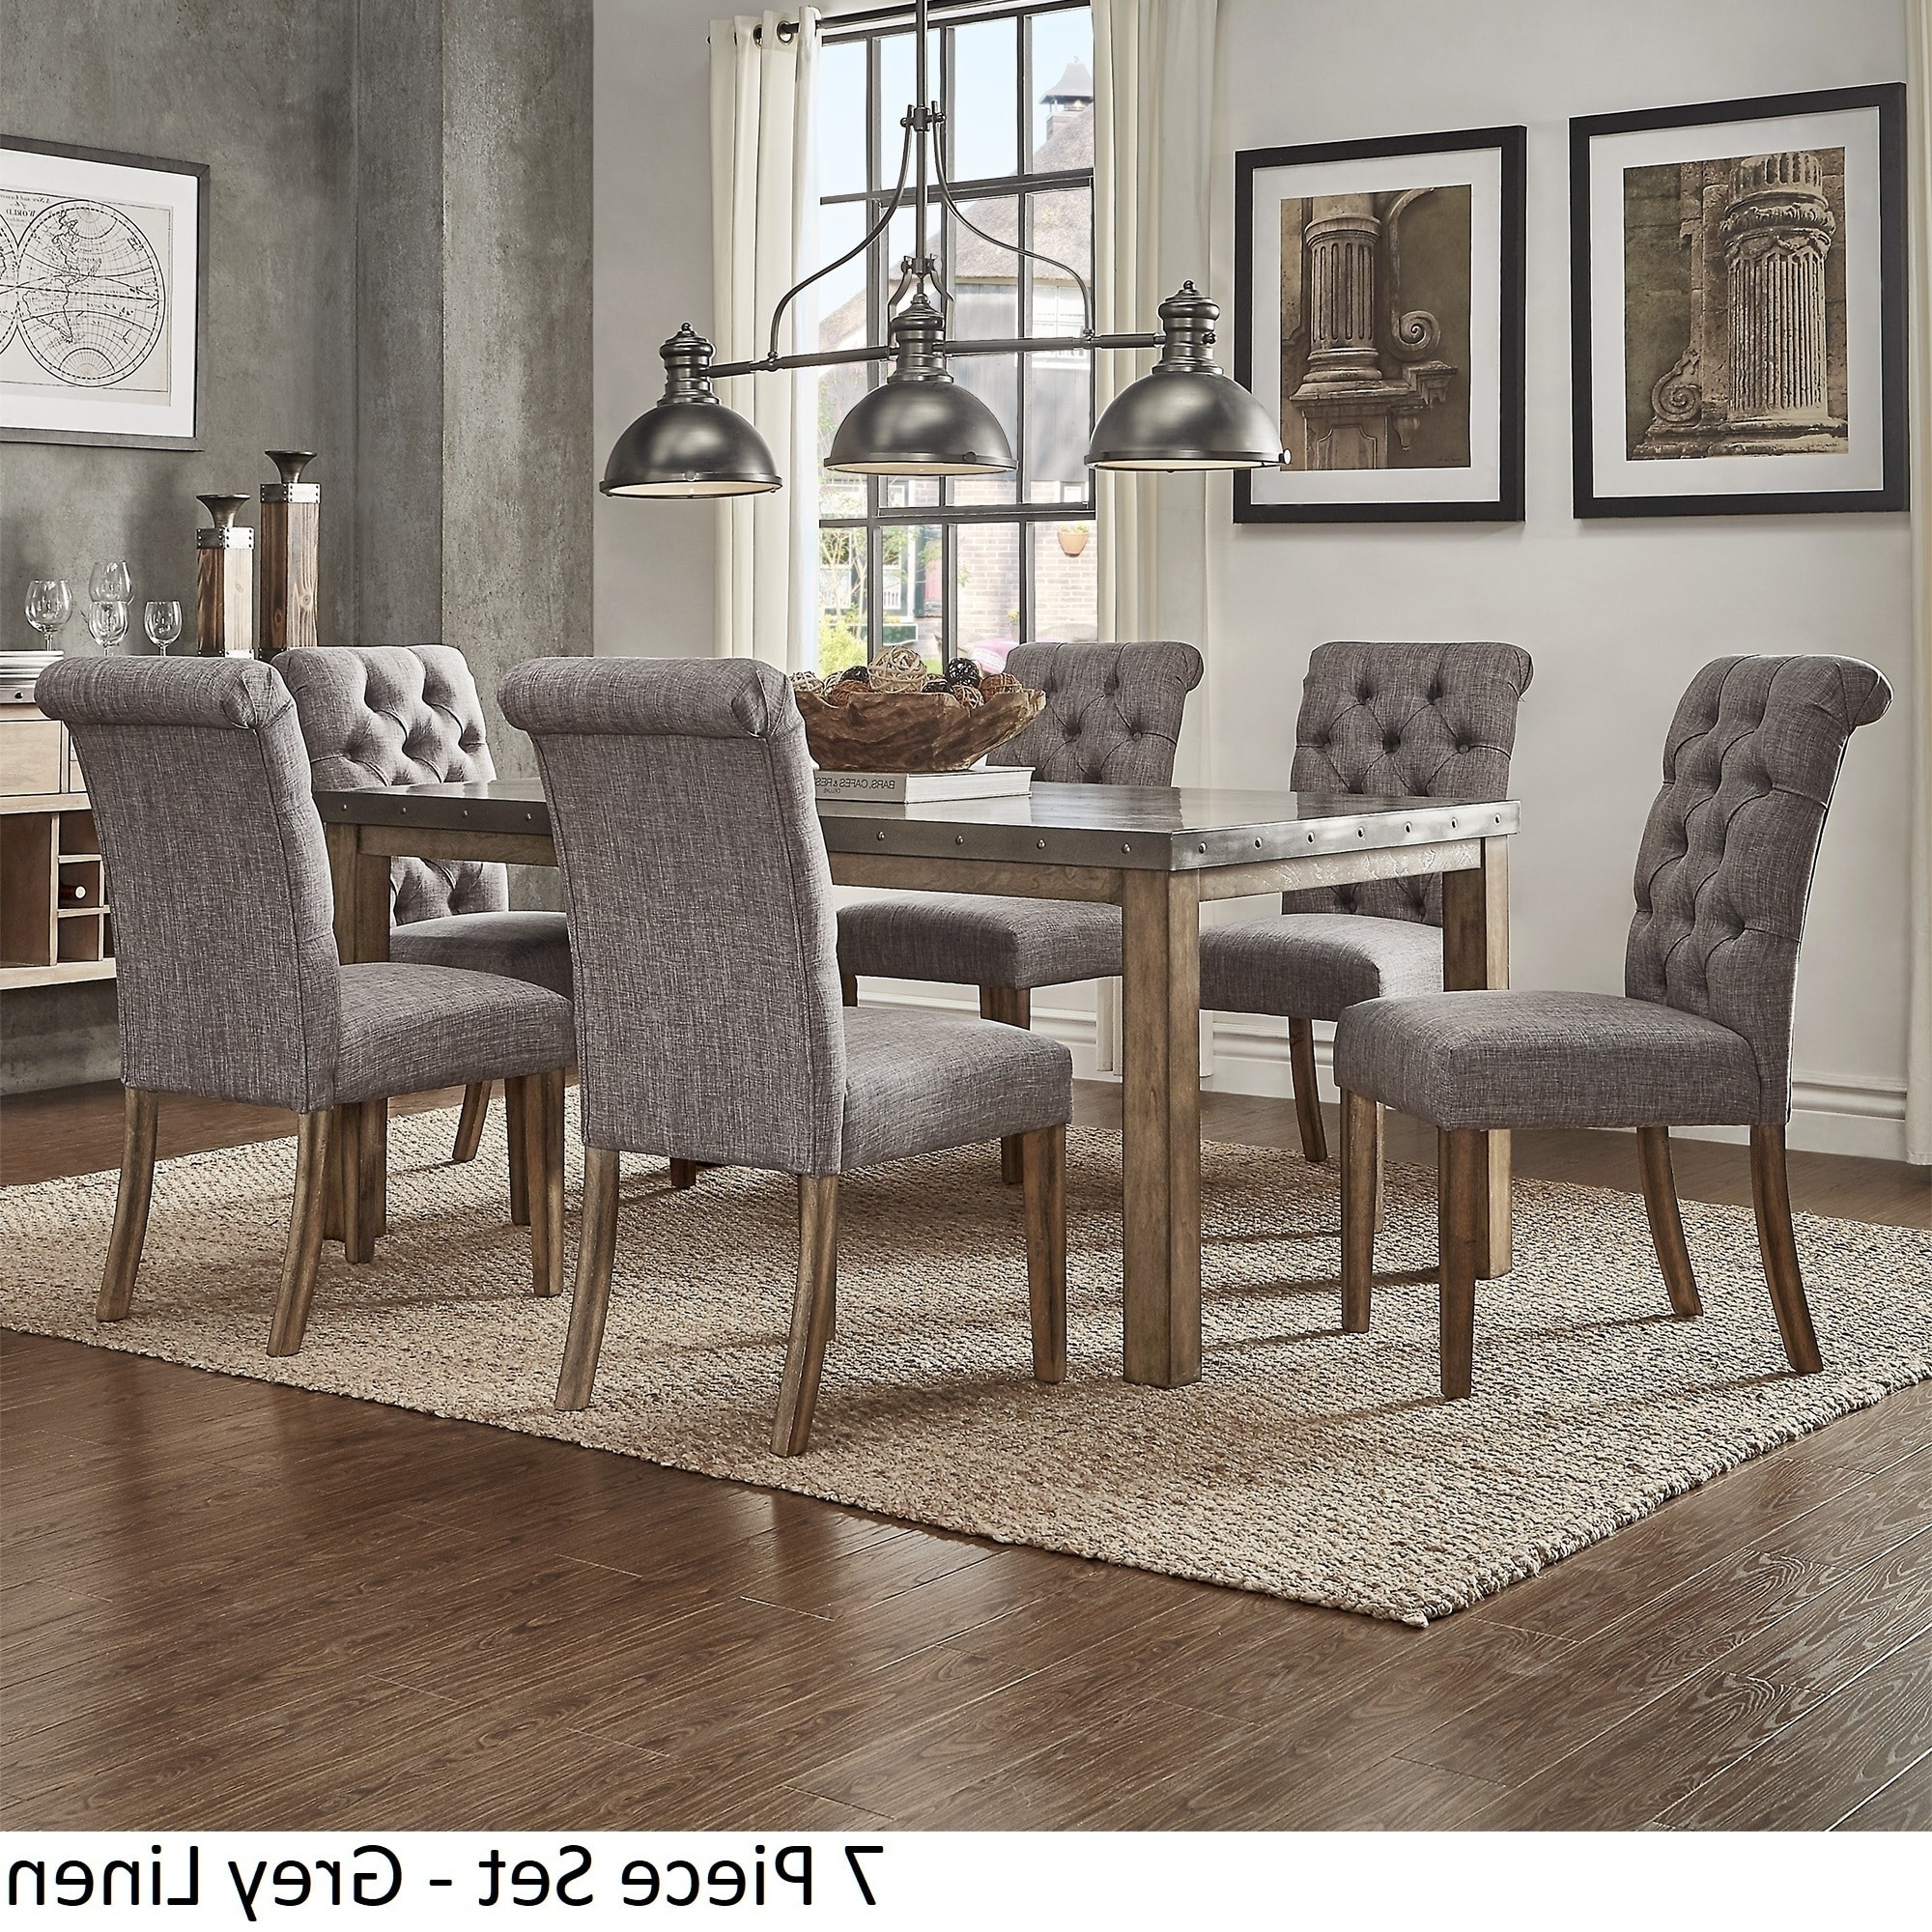 2017 Cassidy Stainless Steel Top Rectangle Dining Table Setinspire Q Regarding Candice Ii 6 Piece Extension Rectangle Dining Sets (Gallery 11 of 25)